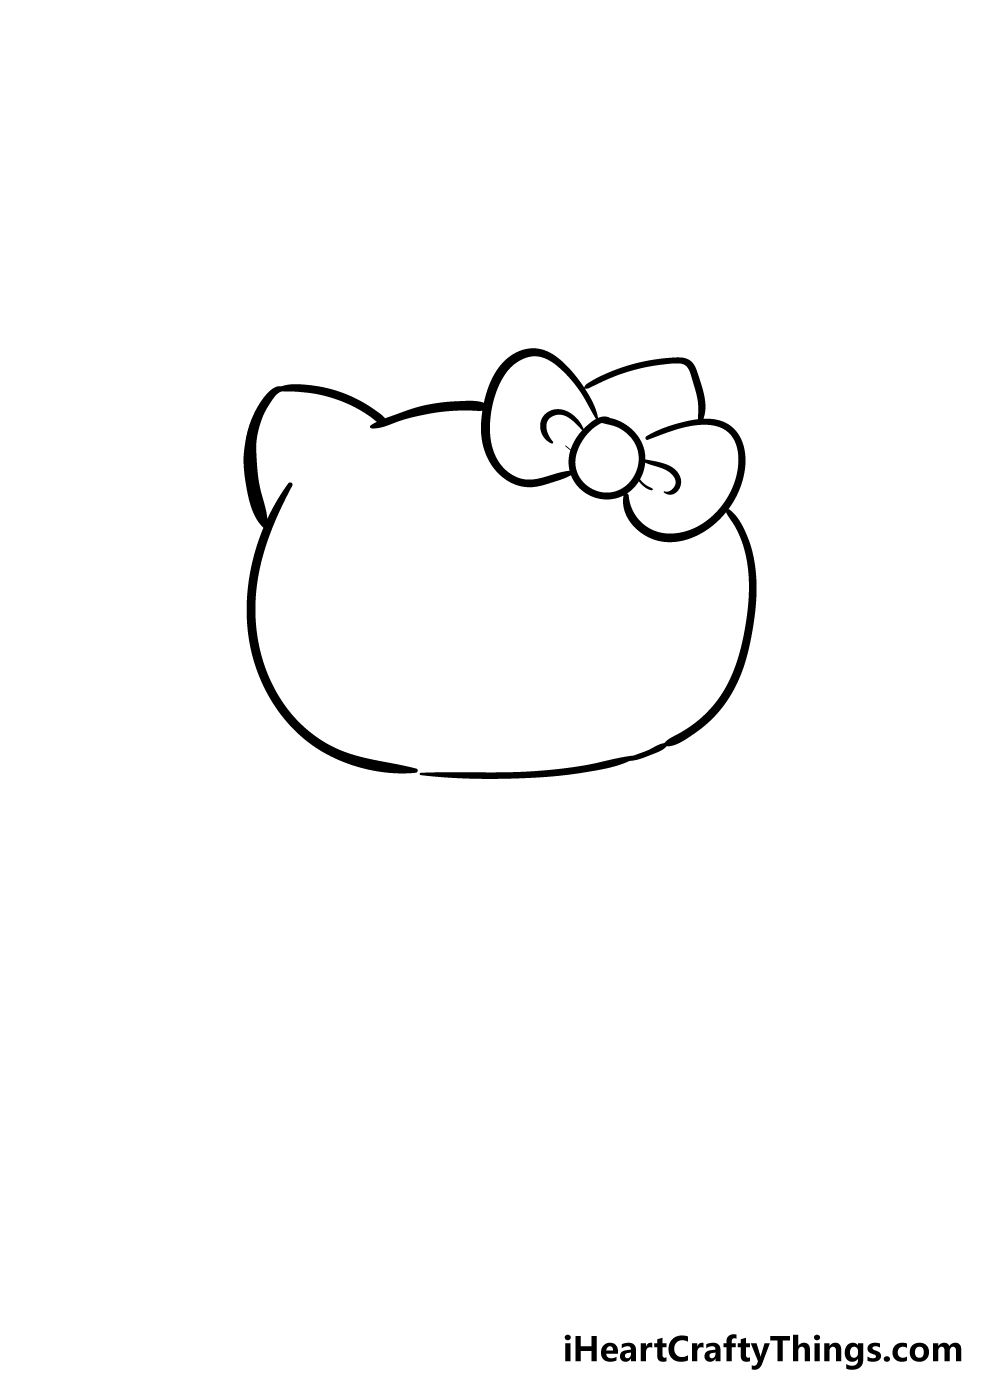 hello kitty drawing step 2